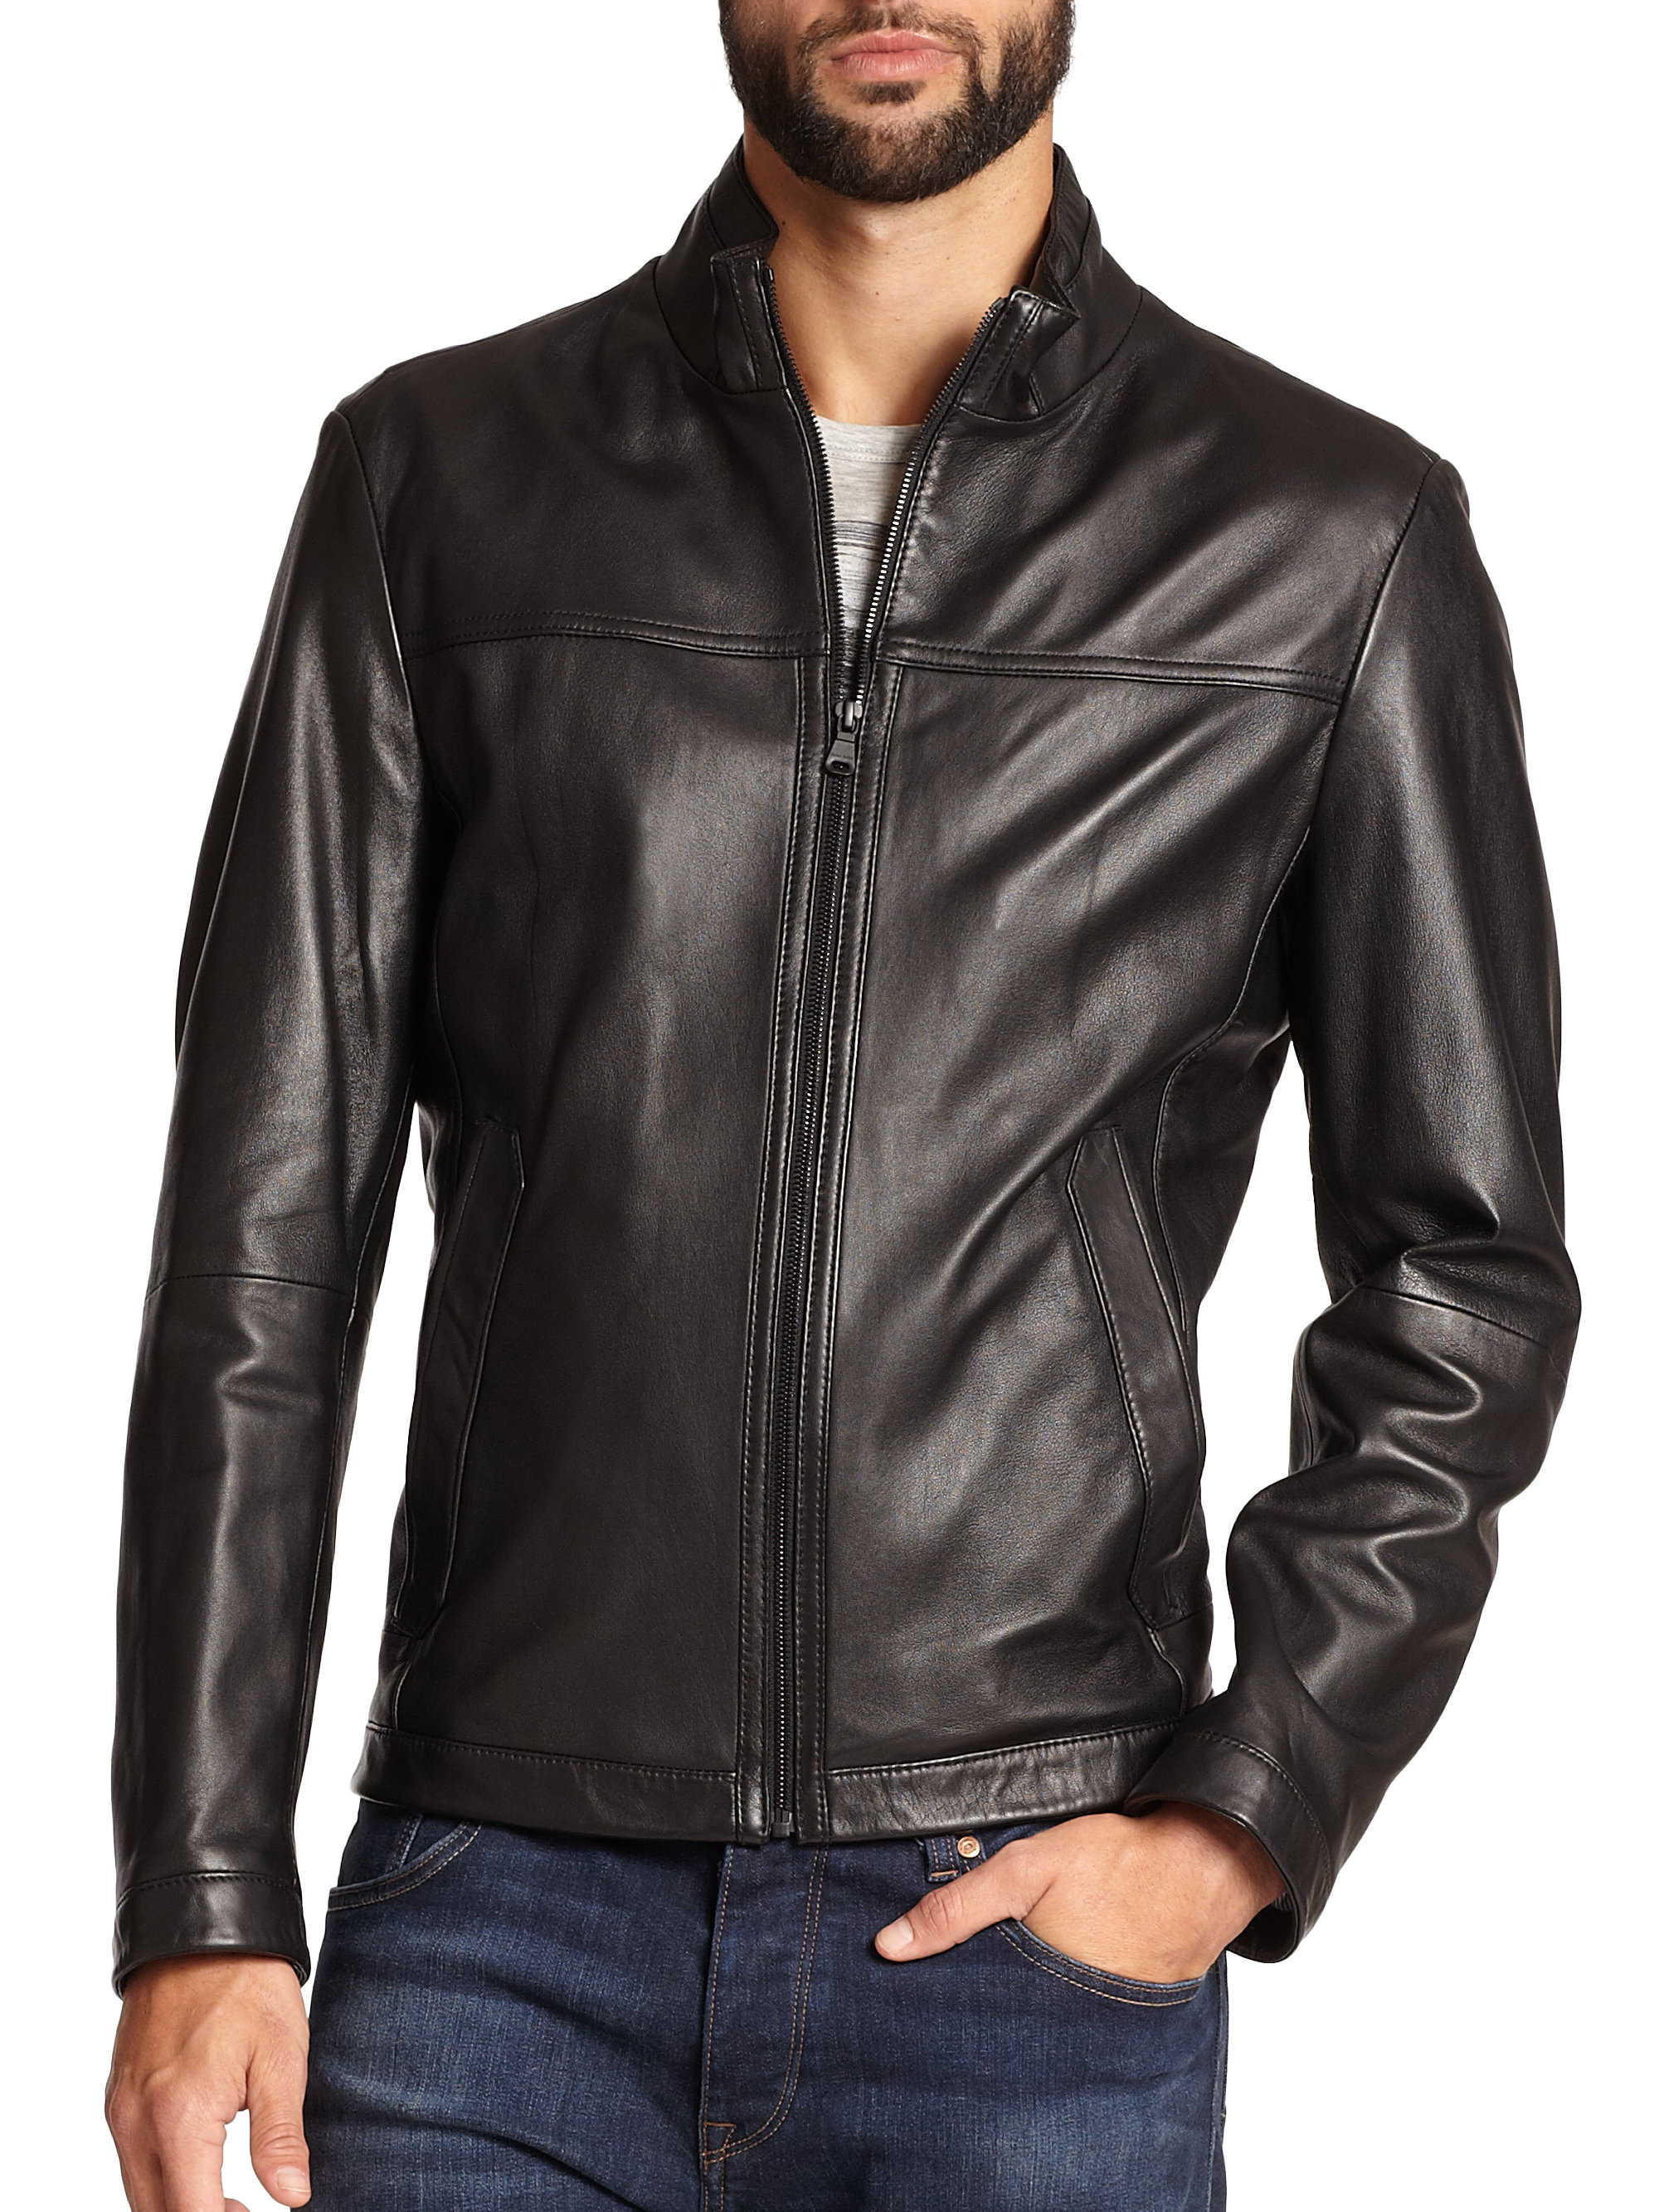 Hugo boss black leather jacket men